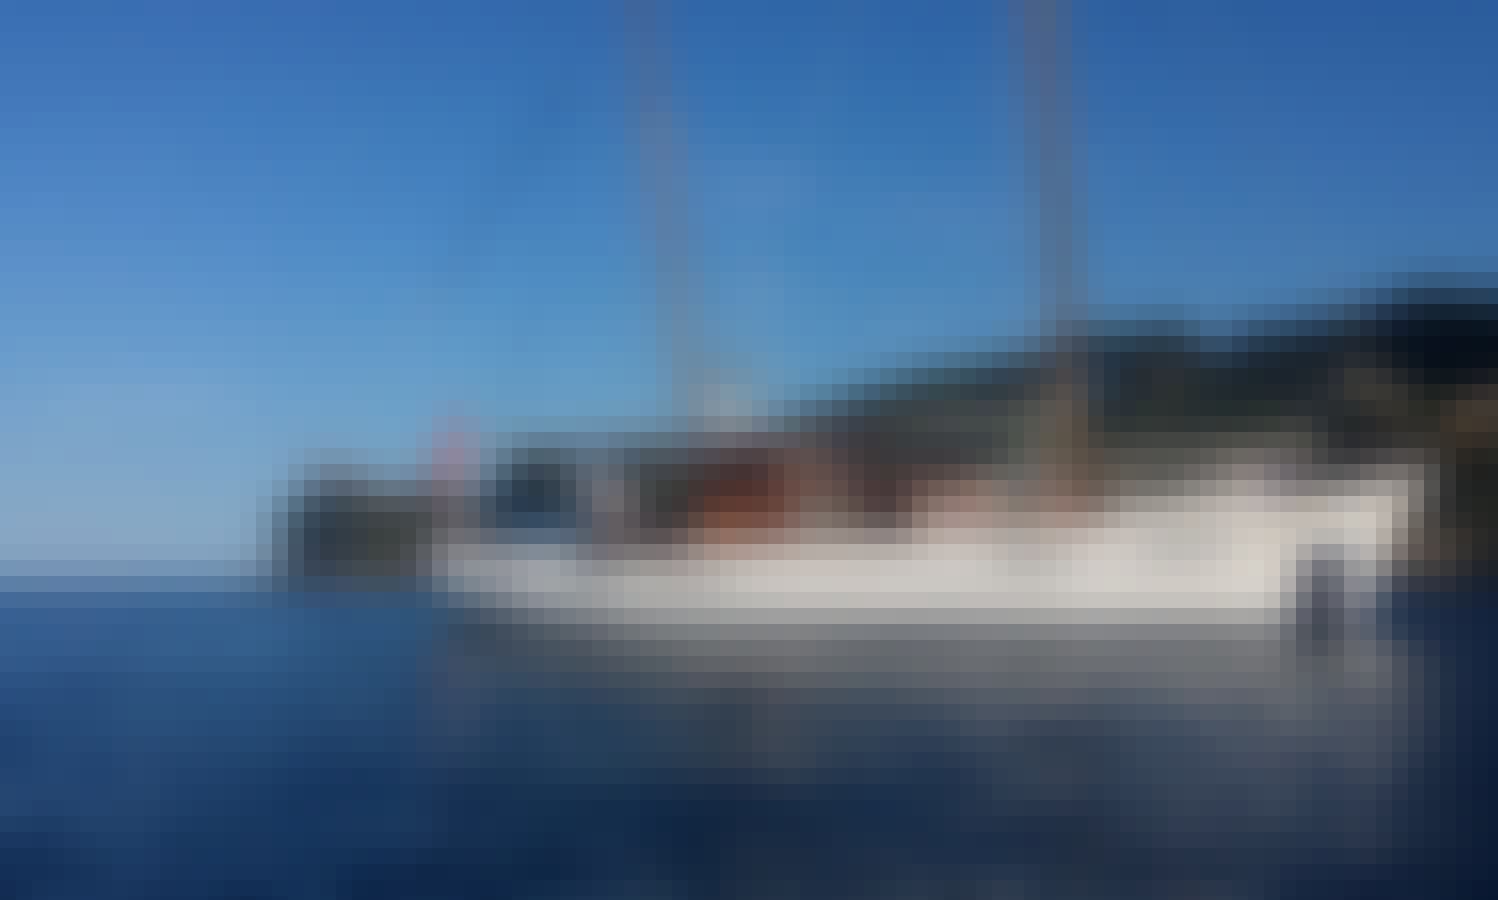 """Sailing Yacht """"Ambersea"""" in VILLEFRANCHE s/M Francia - Shipping in Mediterranean Sea"""